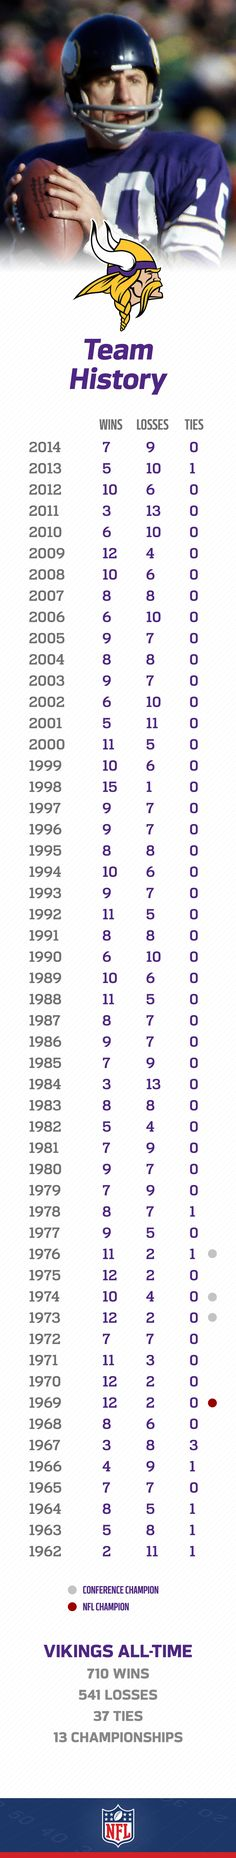 The Minnesota Vikings have reached the Super Bowl four times since 1961.